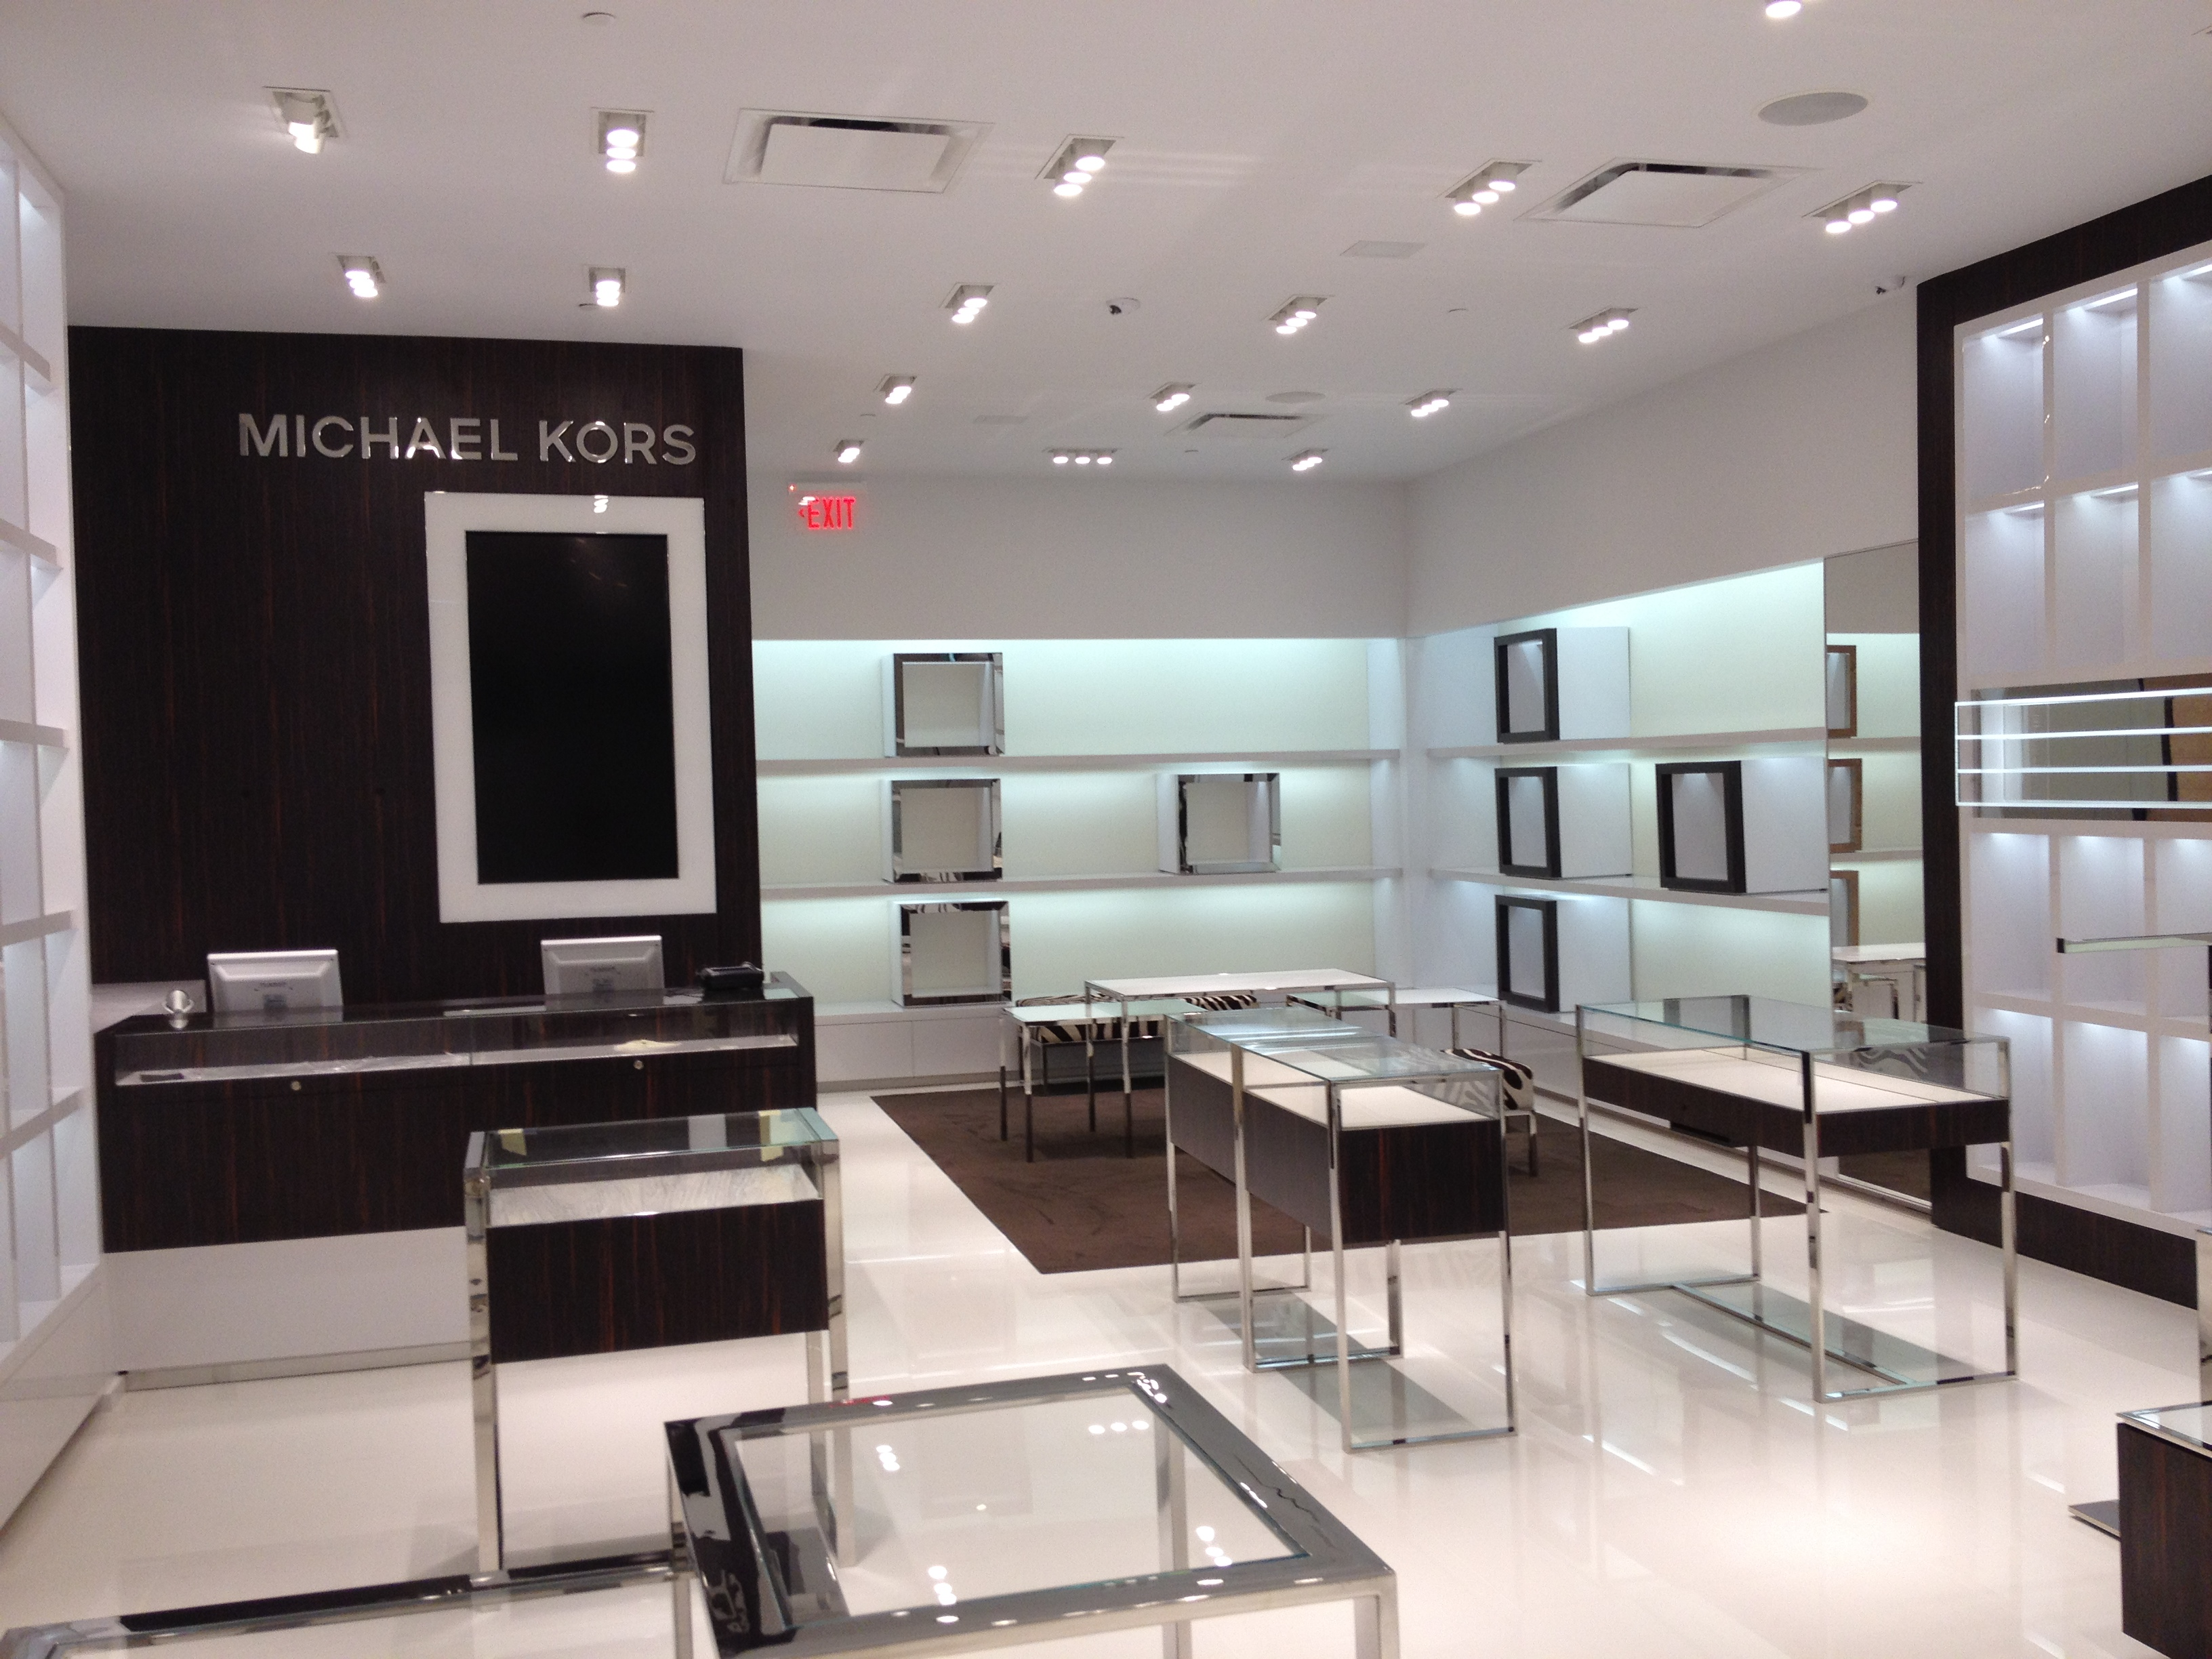 Michael Kors jobs available in East Rutherford, NJ on multivarkaixm2f.ga Apply to Seasonal Associate, Sales Associate, Junior Cost Accountant and more!